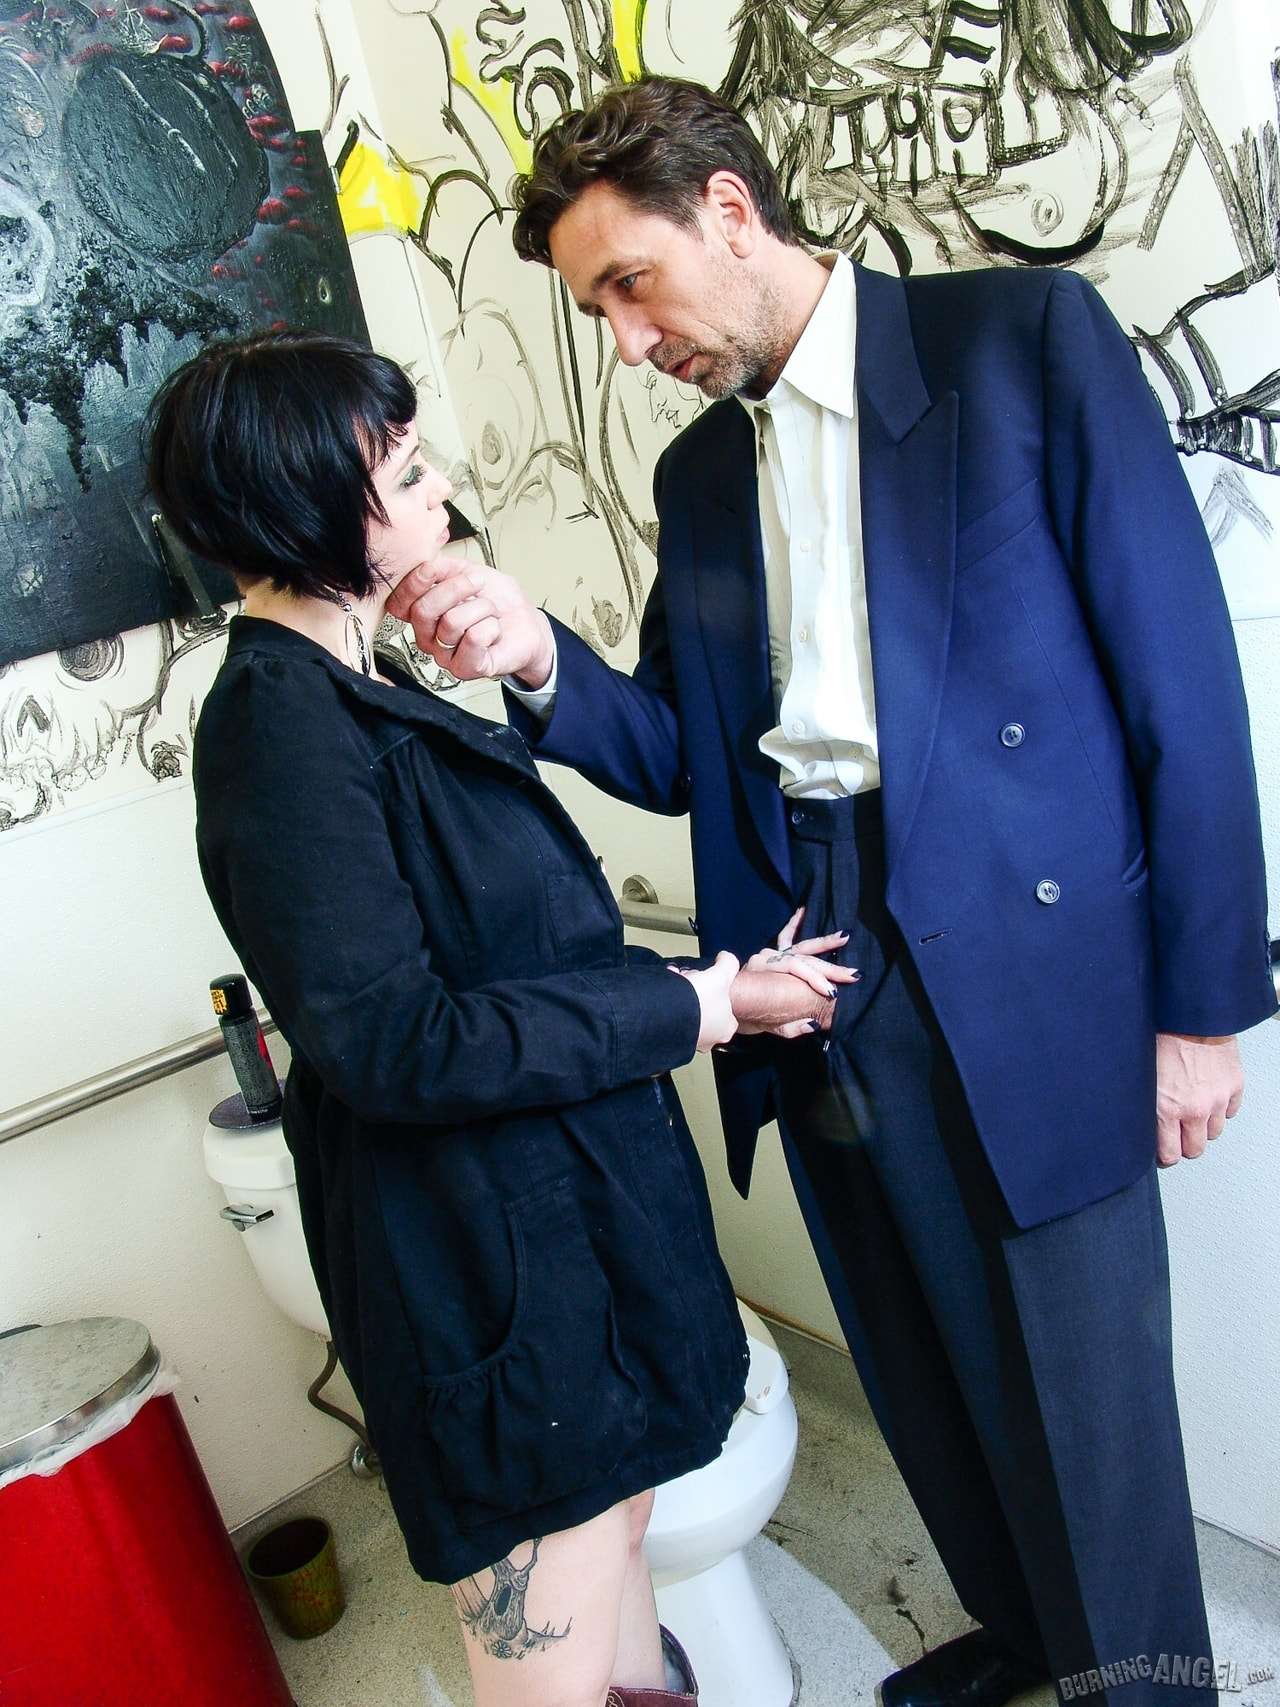 Burning Angel 'Tattoo Shop Pit Stop' starring Sparky Sin Claire (Photo 1)